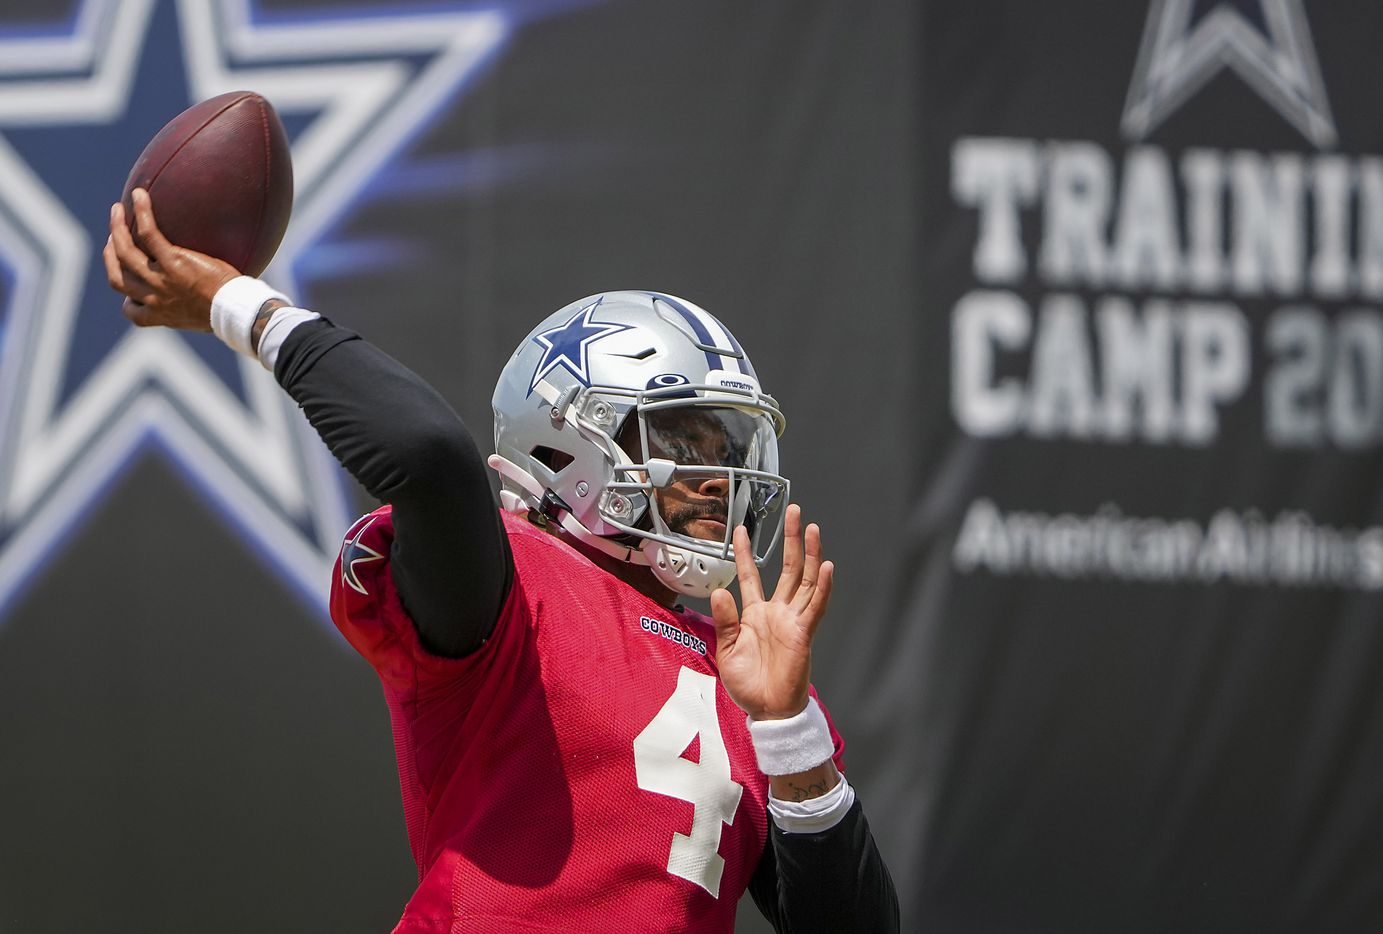 Dallas Cowboys quarterback Dak Prescott throws a pass in a drill during a practice at training camp on Wednesday, Aug. 11, 2021, in Oxnard, Calif.